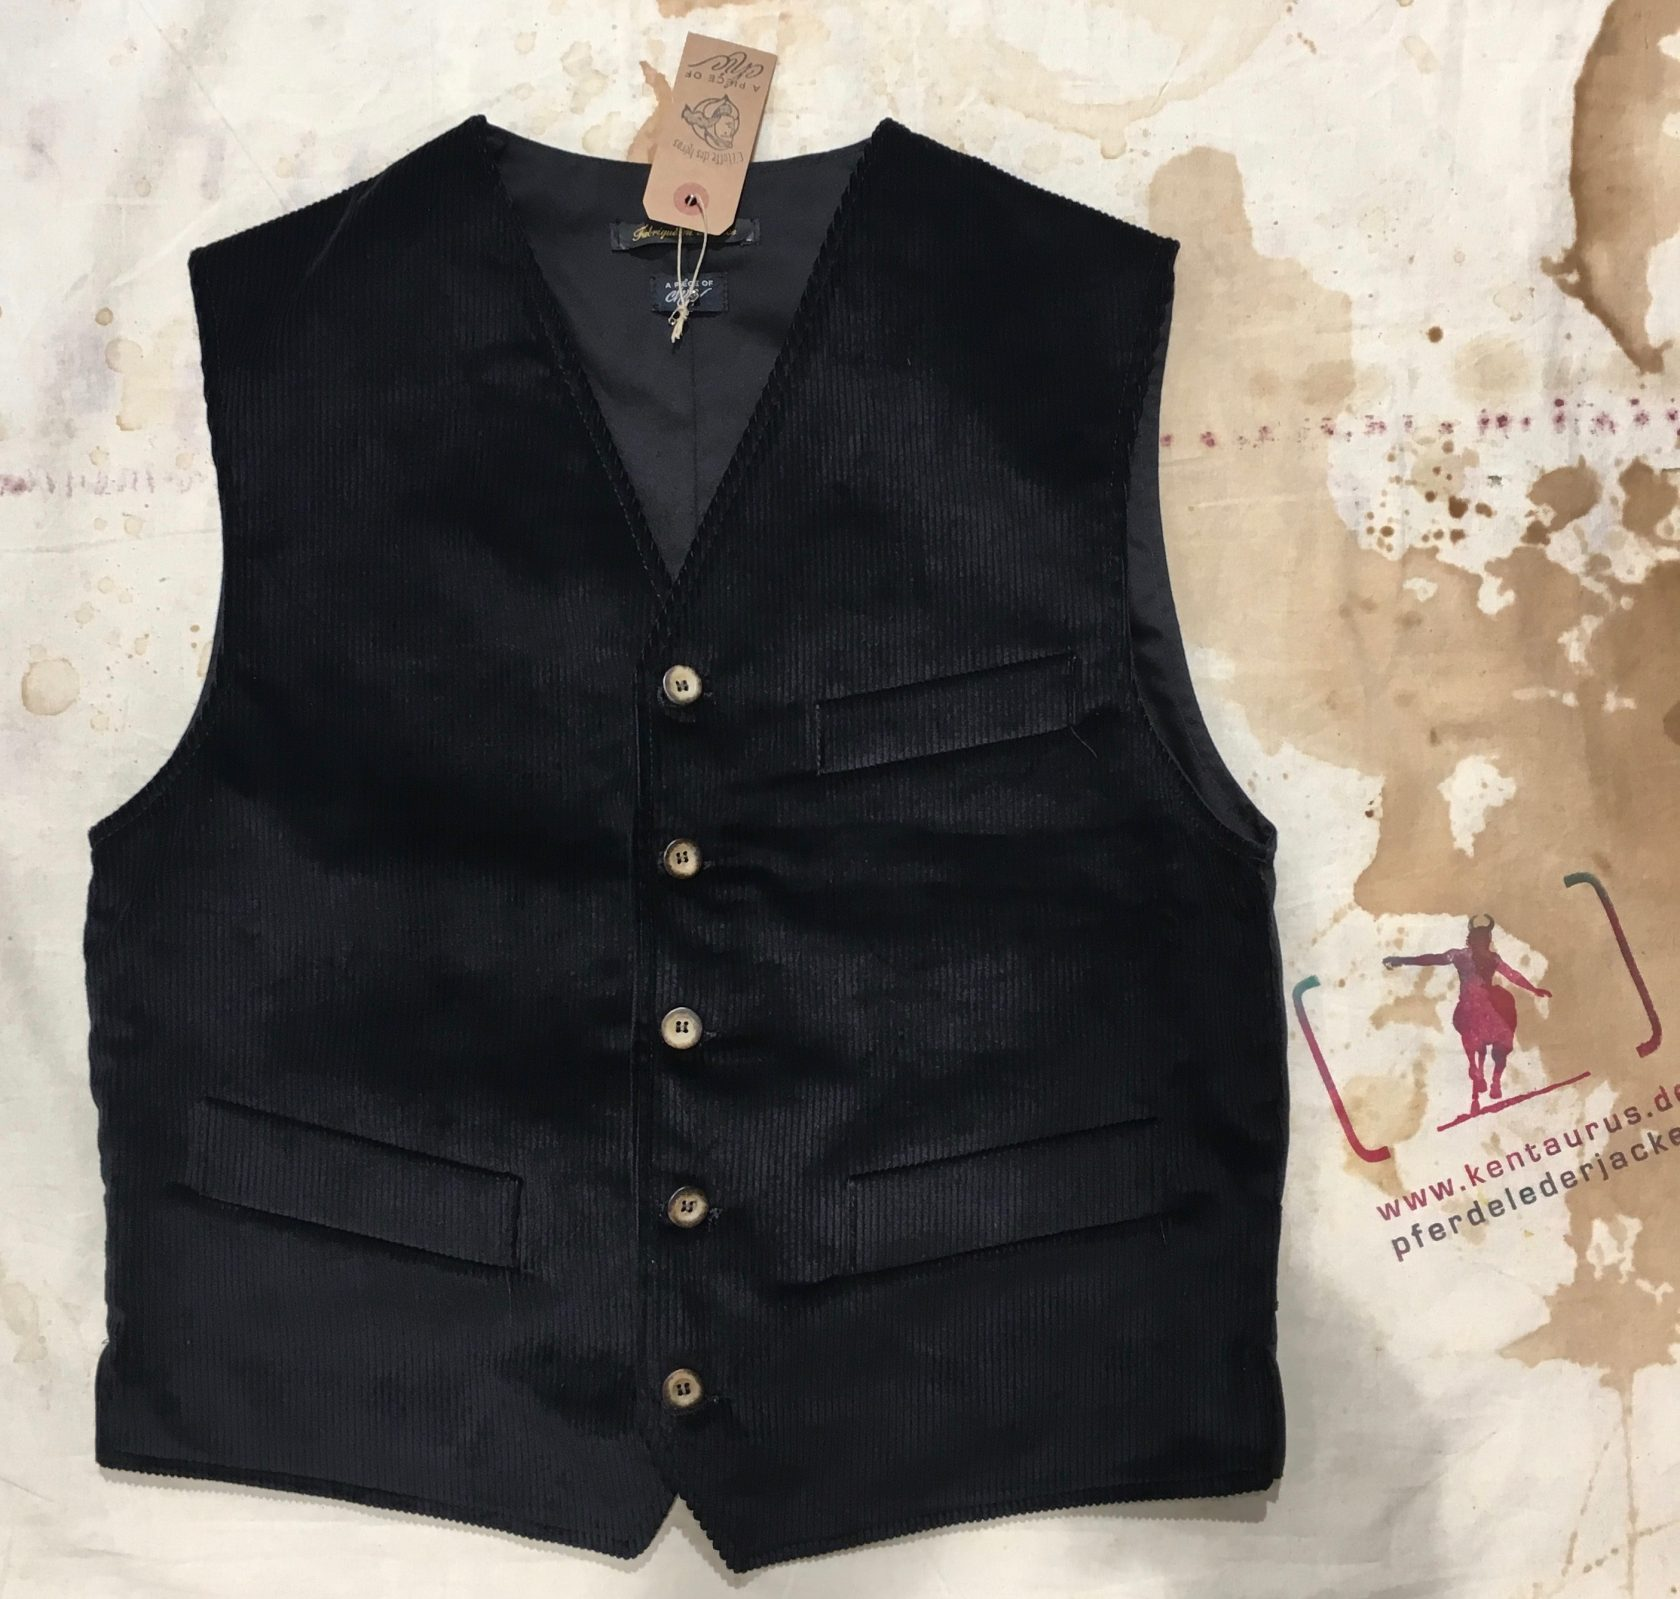 A Piece of Chic black cord vest